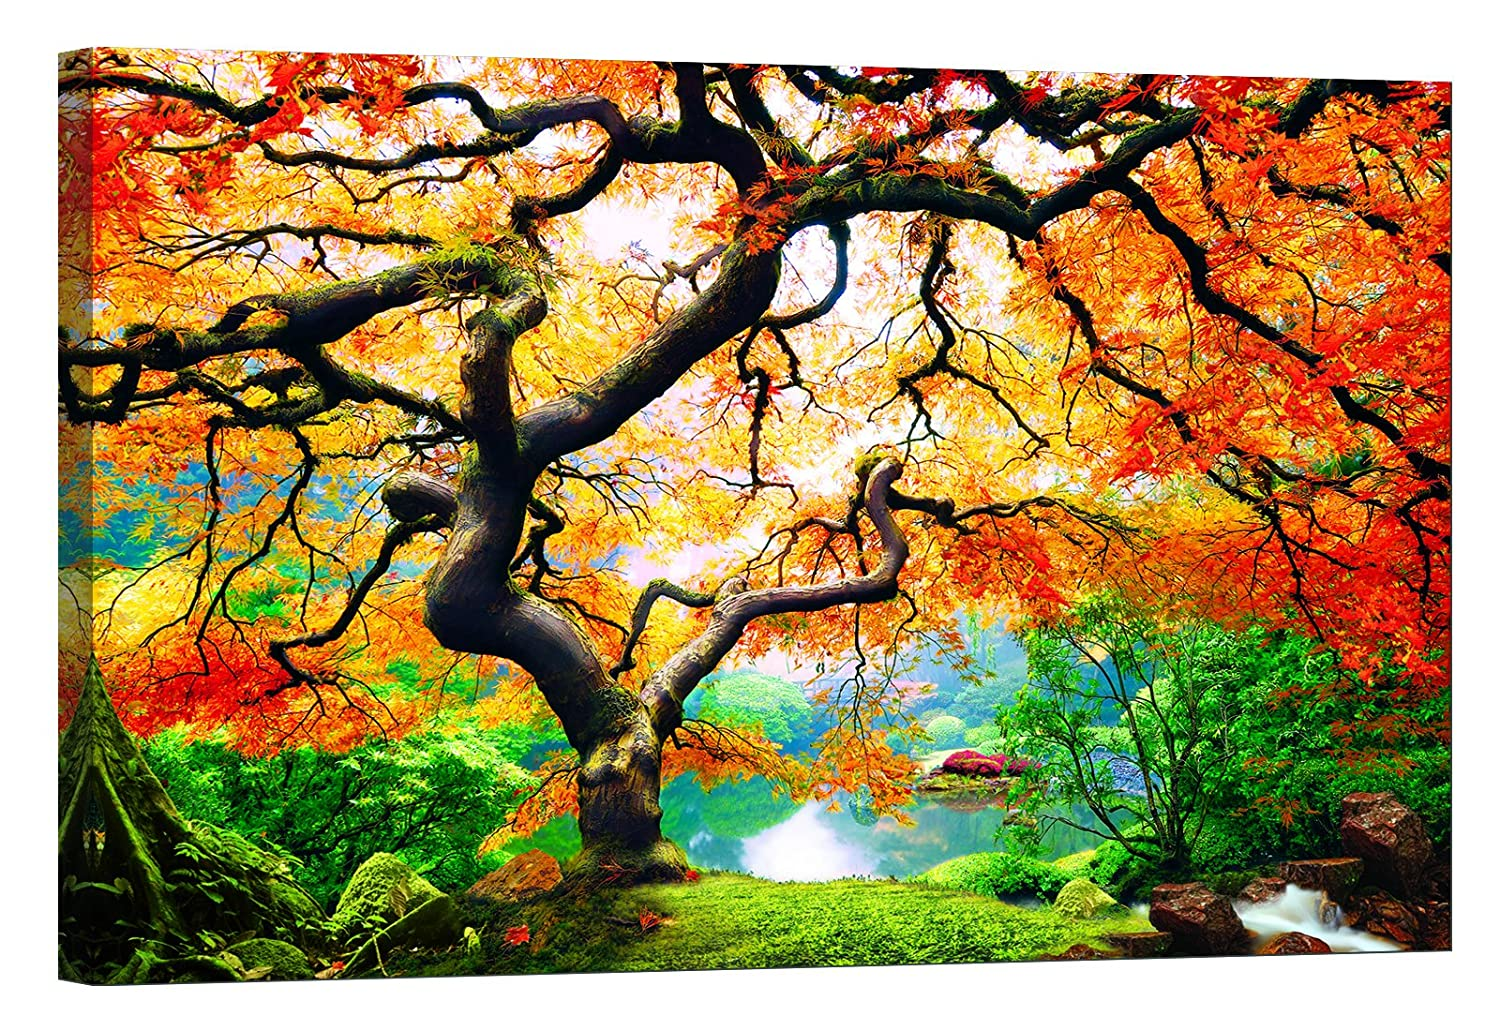 Lightfairy Glow In The Dark Canvas Painting Stretched And Framed Giclee Wall Art Print Forest Outdoor Maple Tree Master Bedroom Living Room